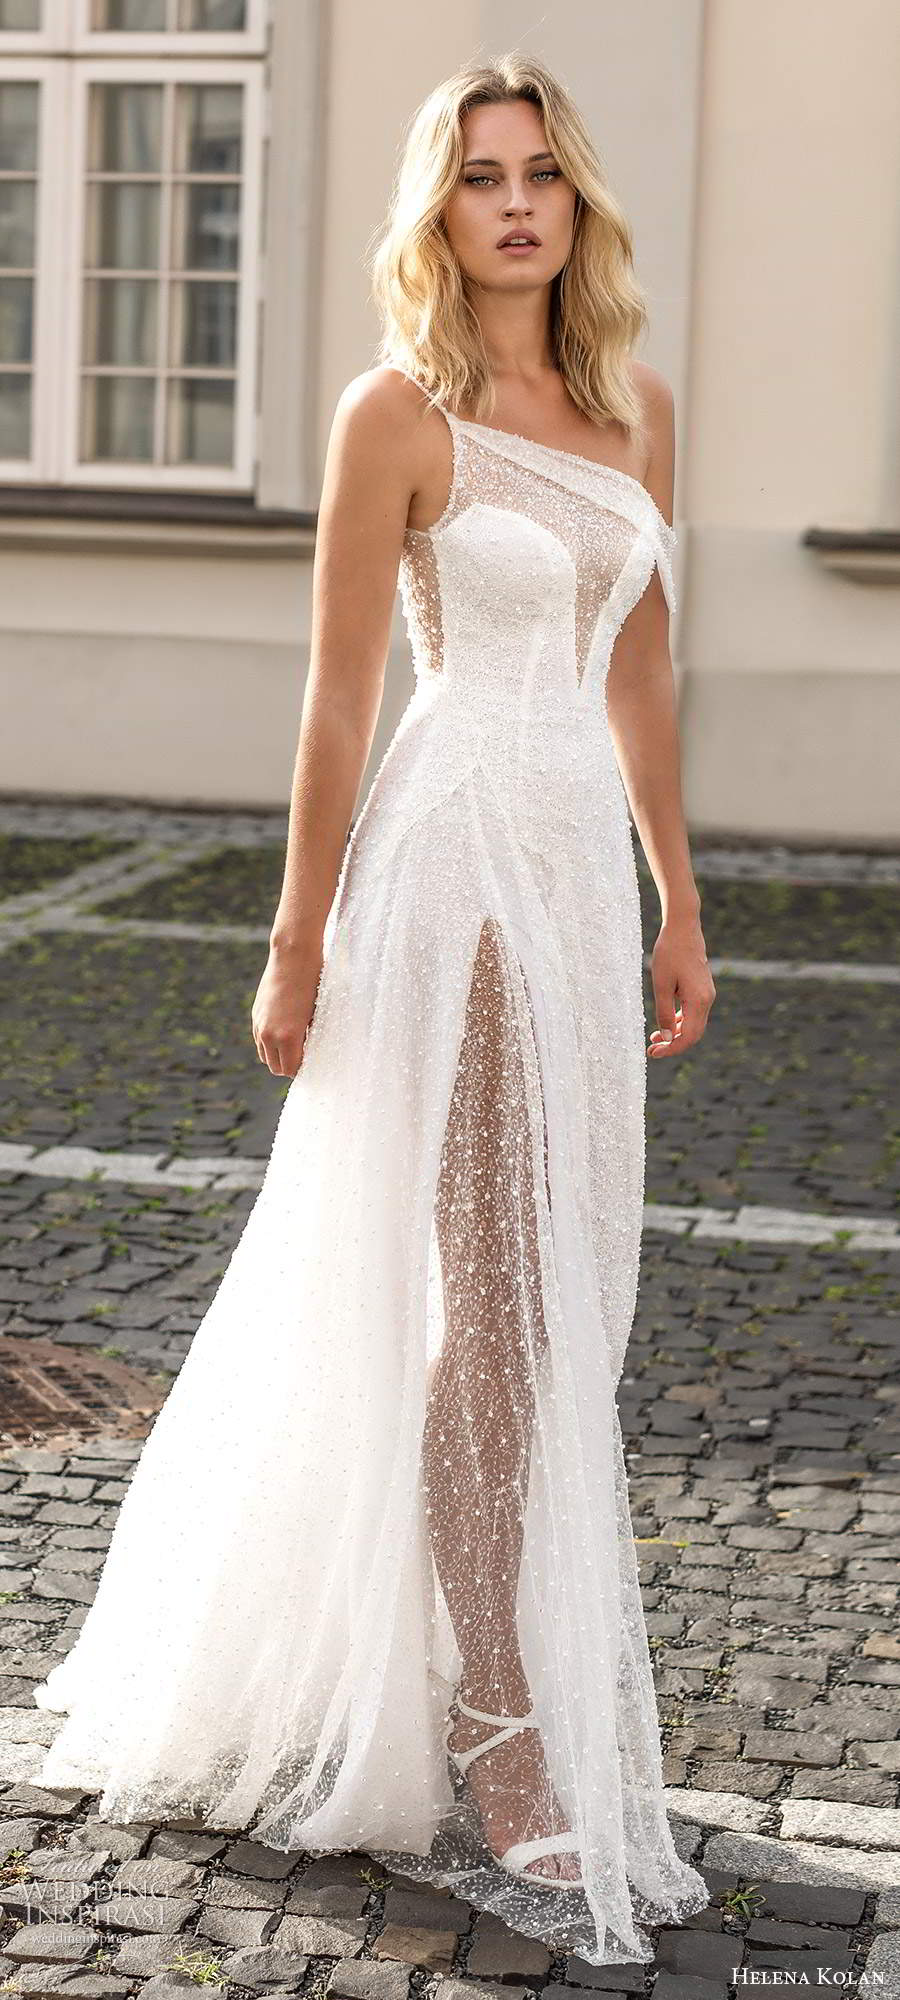 helena kolan 2020 bridal sleeveless one shoulder strap asmmetric neckline fully embellished glitzy a line ball gown wedding dress sweep train (6) mv